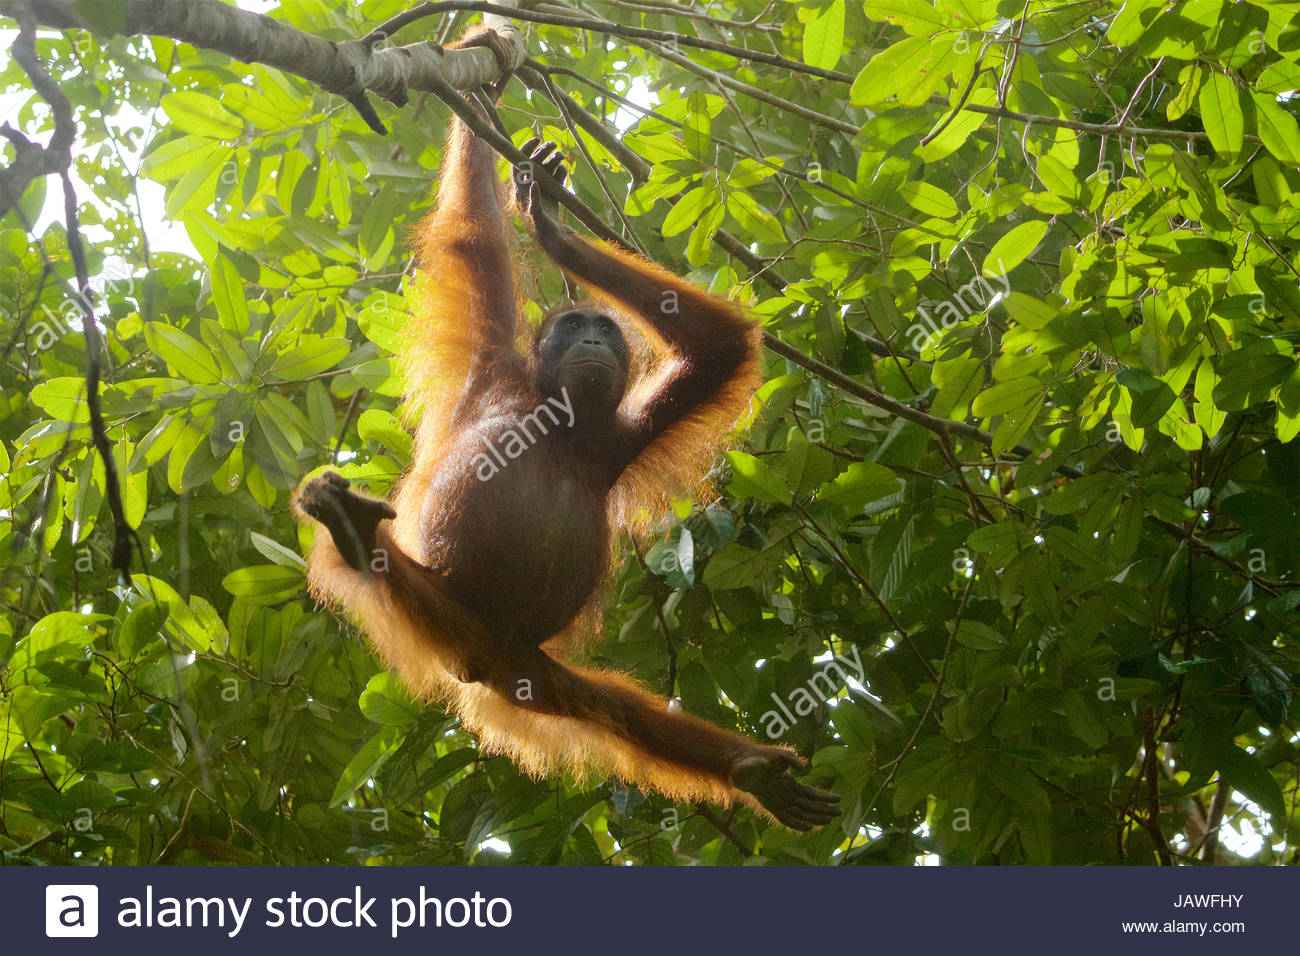 An adult female orangutan, Pongo pygmaeus wurmbii, hangs from a tree in Gunung Palung National Park. - Stock Image